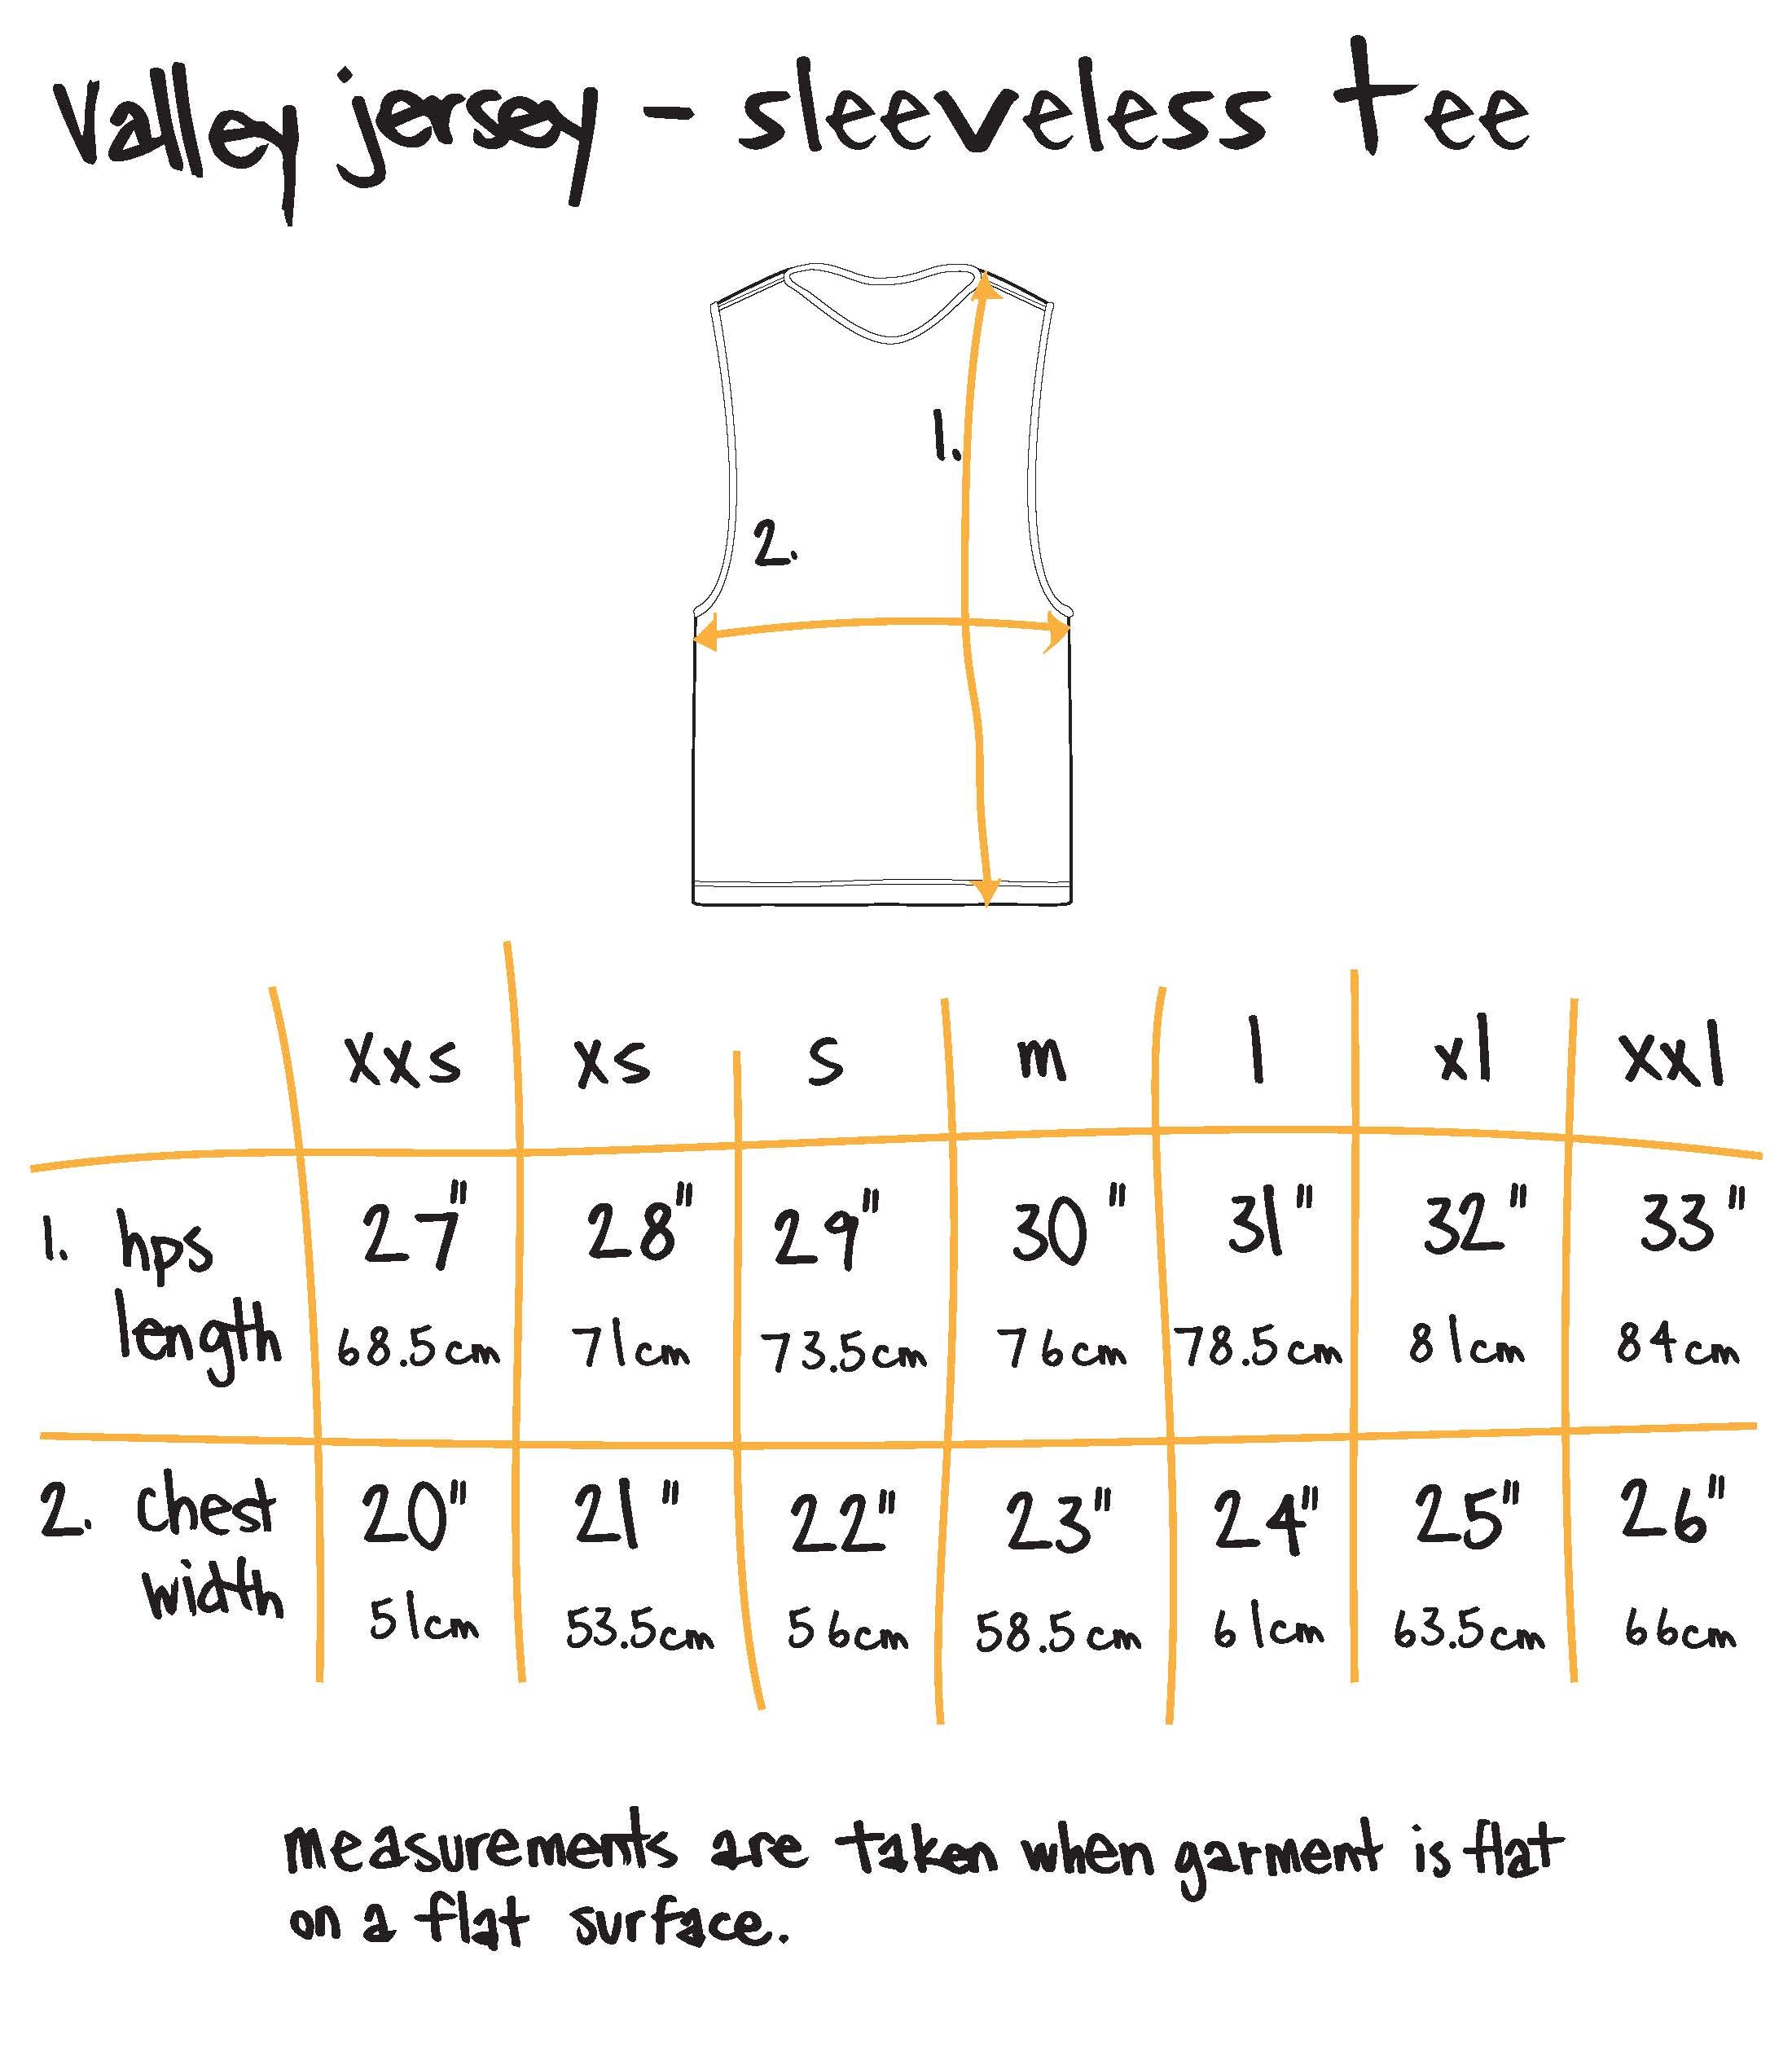 scribble mascot sleeveless tee Size Guide